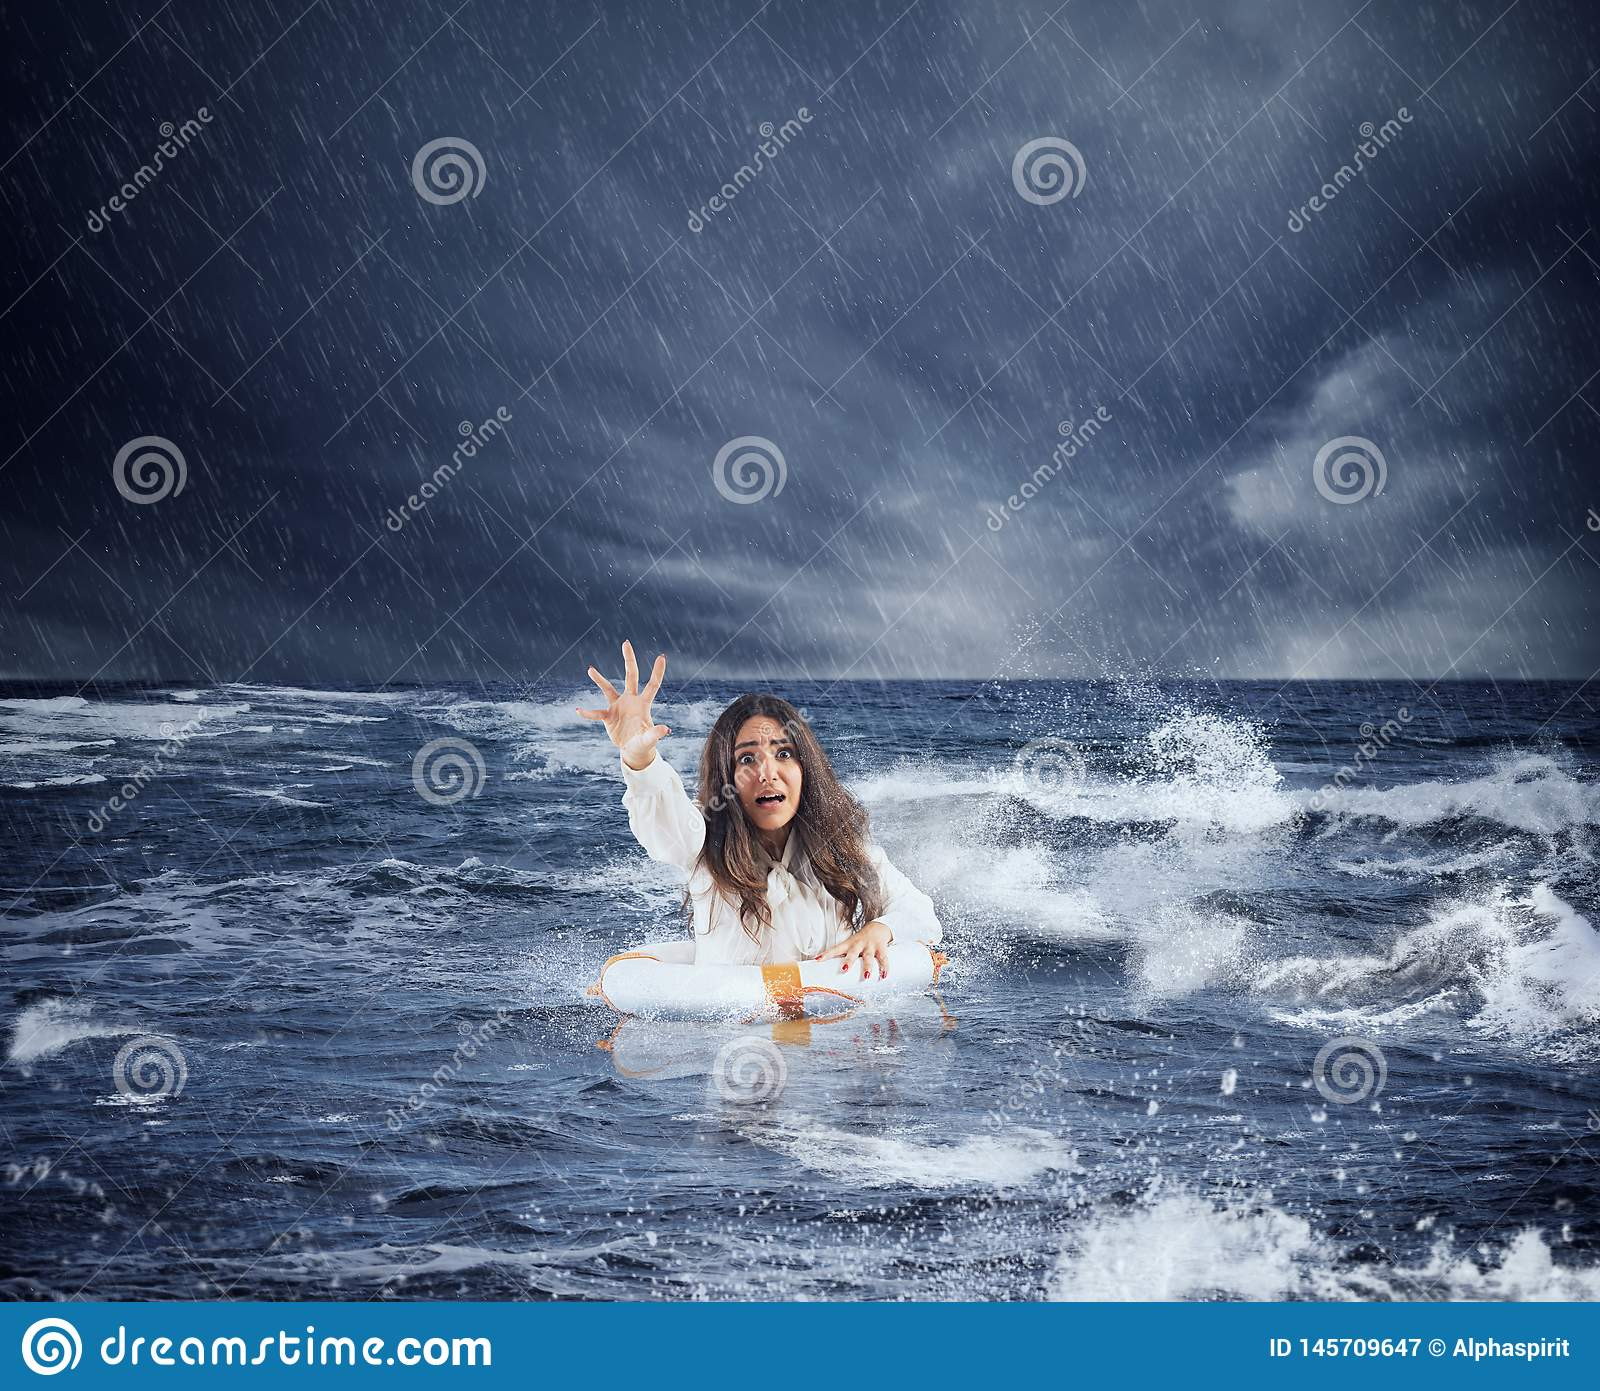 Businesswoman in the ocean with lifebelt asks help during a storm